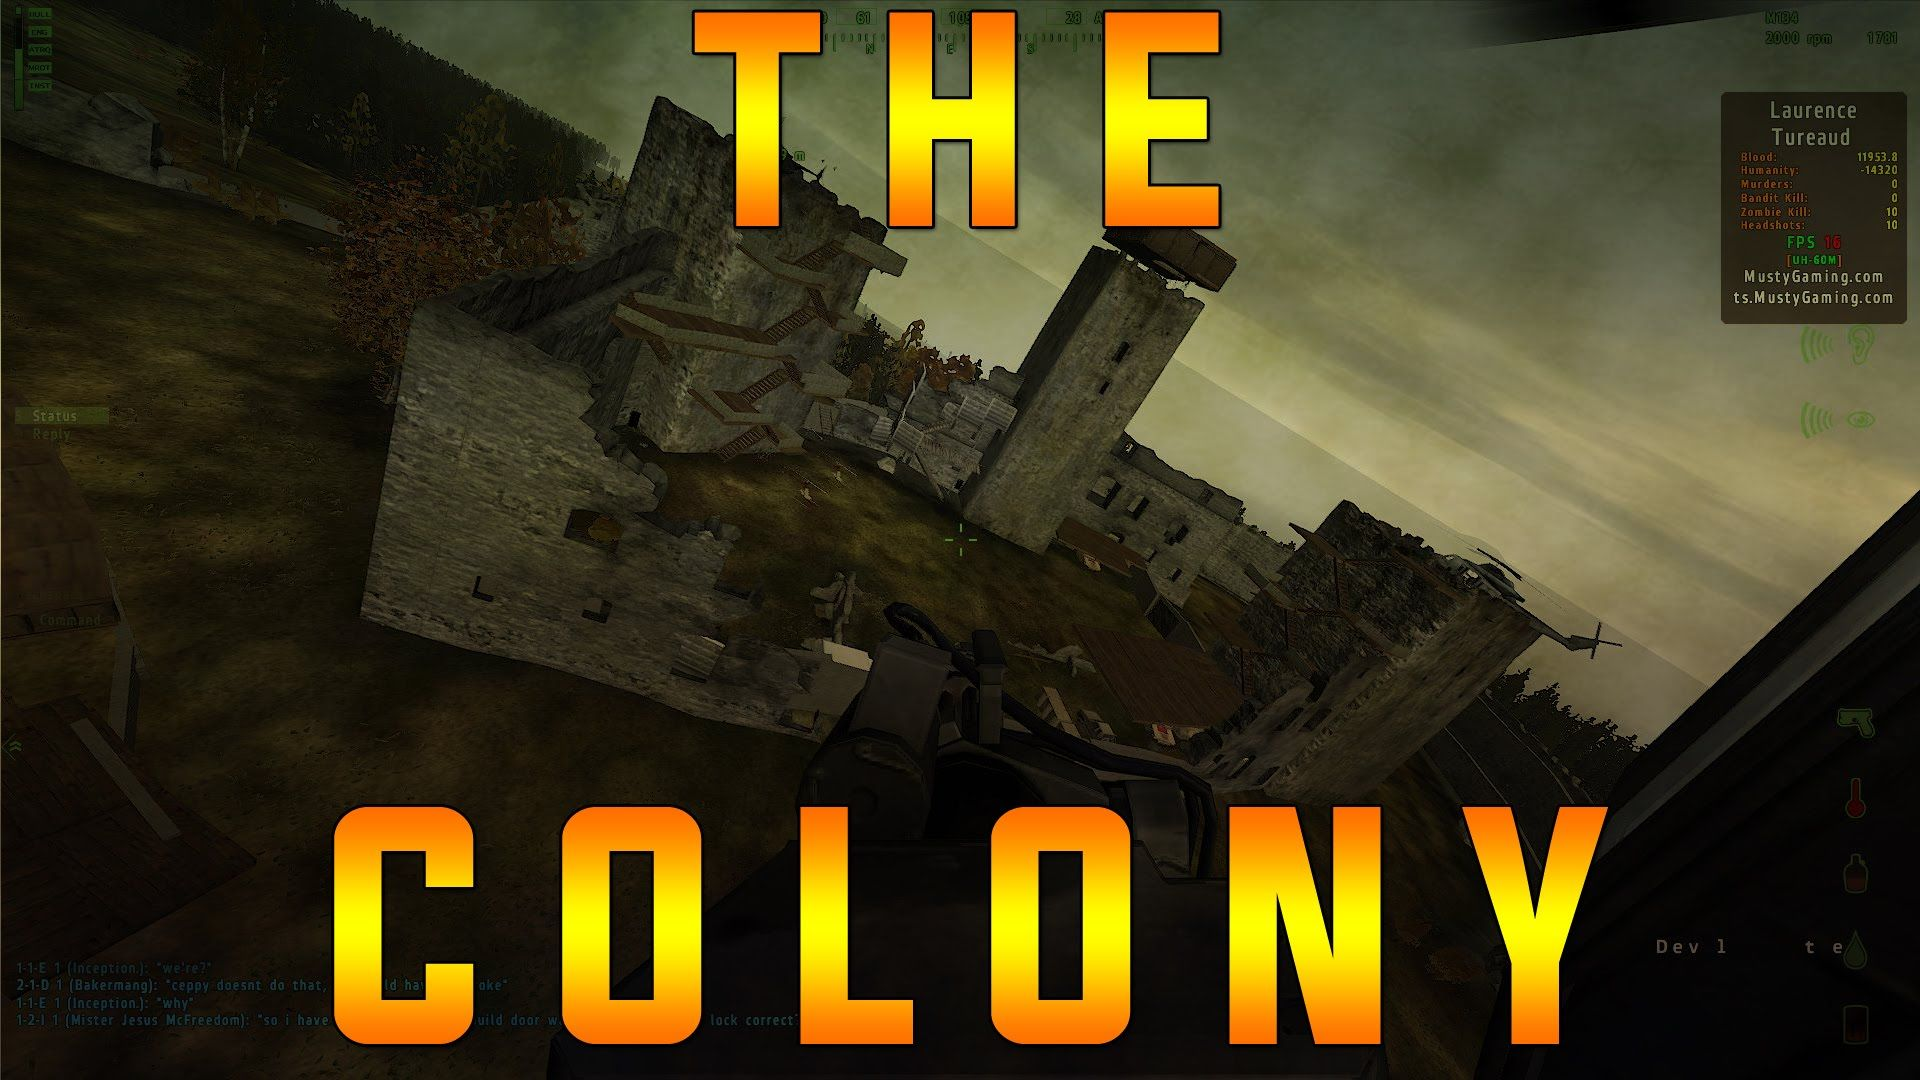 Dayz Epoch The Colony I Come Across A Colony Of About 8 Bases